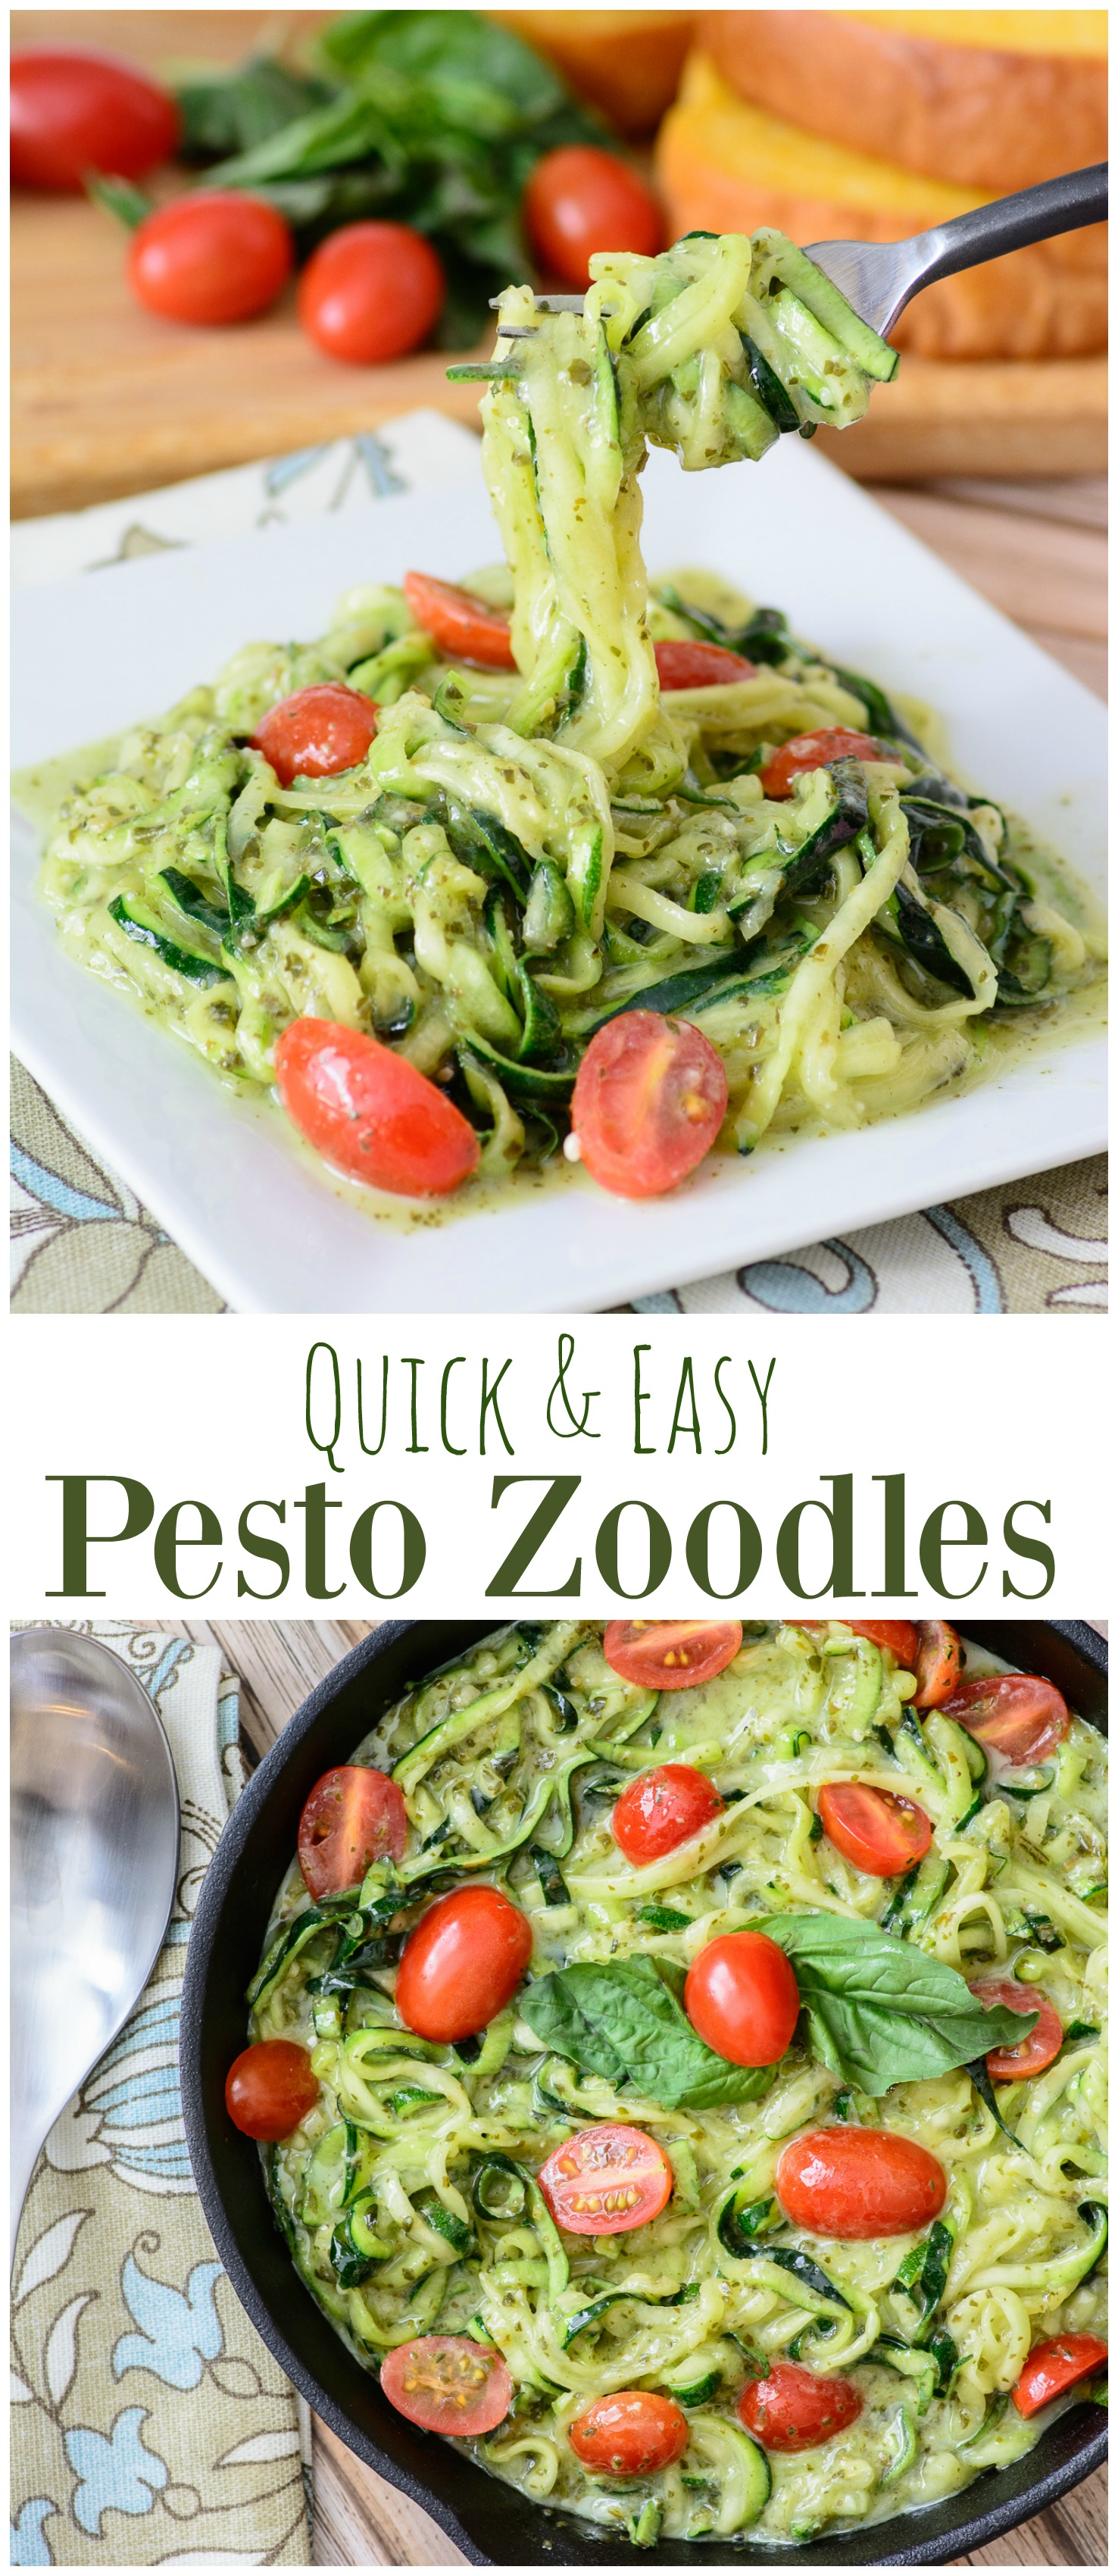 Quick Easy Makeup Tips Ideas For Work: Quick & Easy Pesto Zoodles